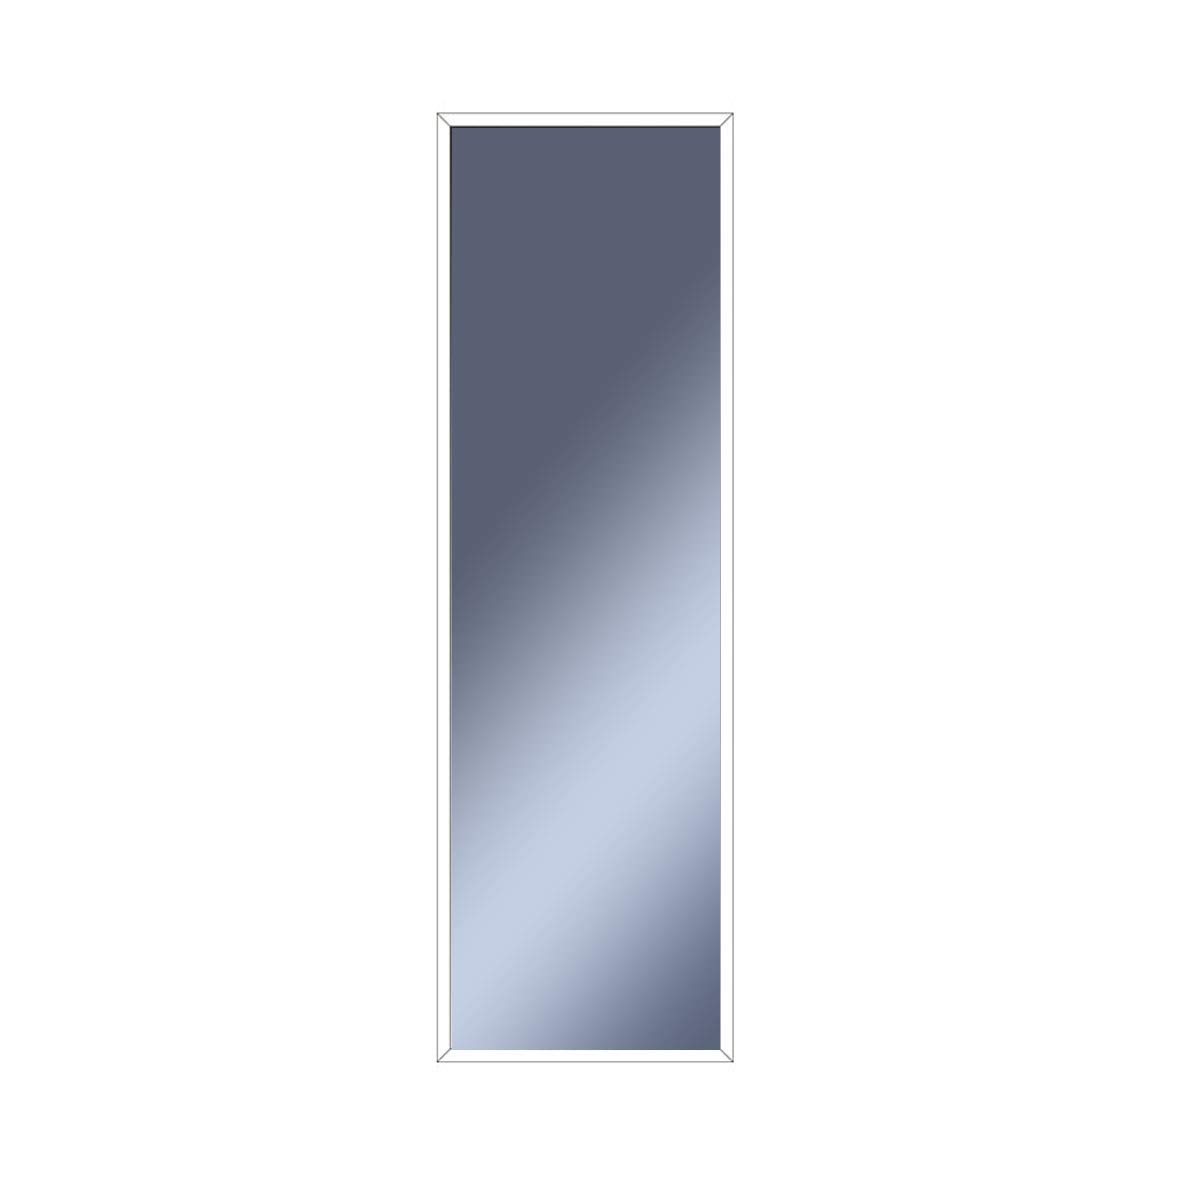 Amazoncom Dp Home 18 X 57 In Wall Mounted Full Length Wall Mirror